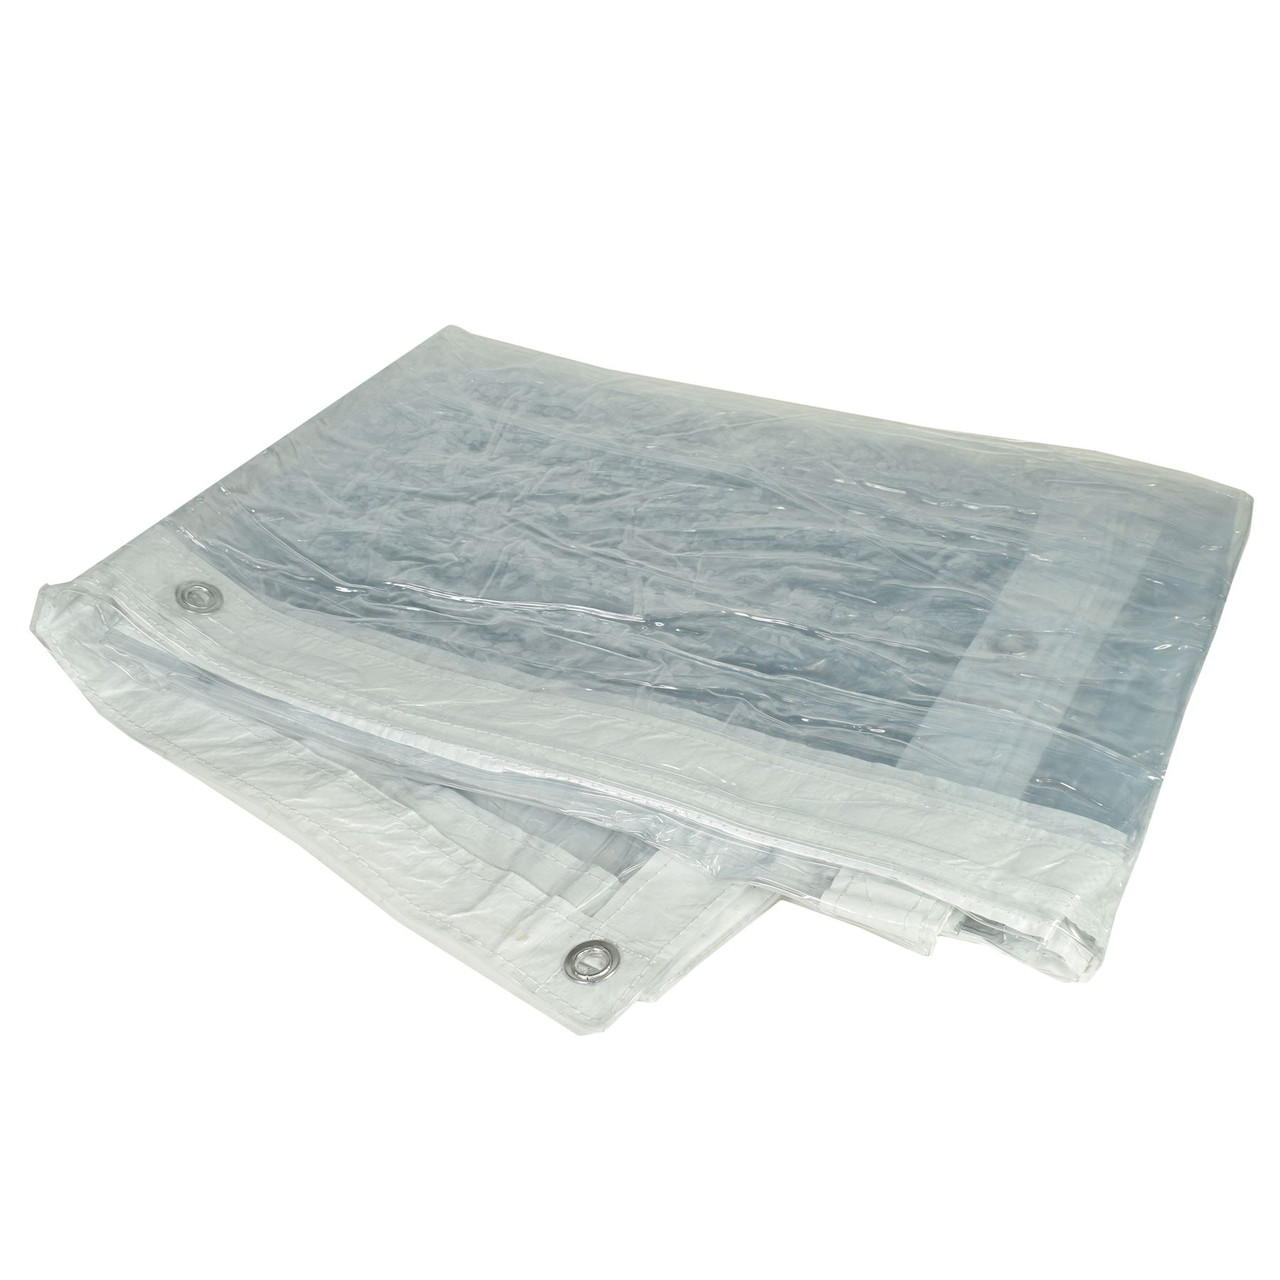 Clear PVC See Through Tarpaulin Sheet Cover Waterproof 2m x 3m Market Stalls